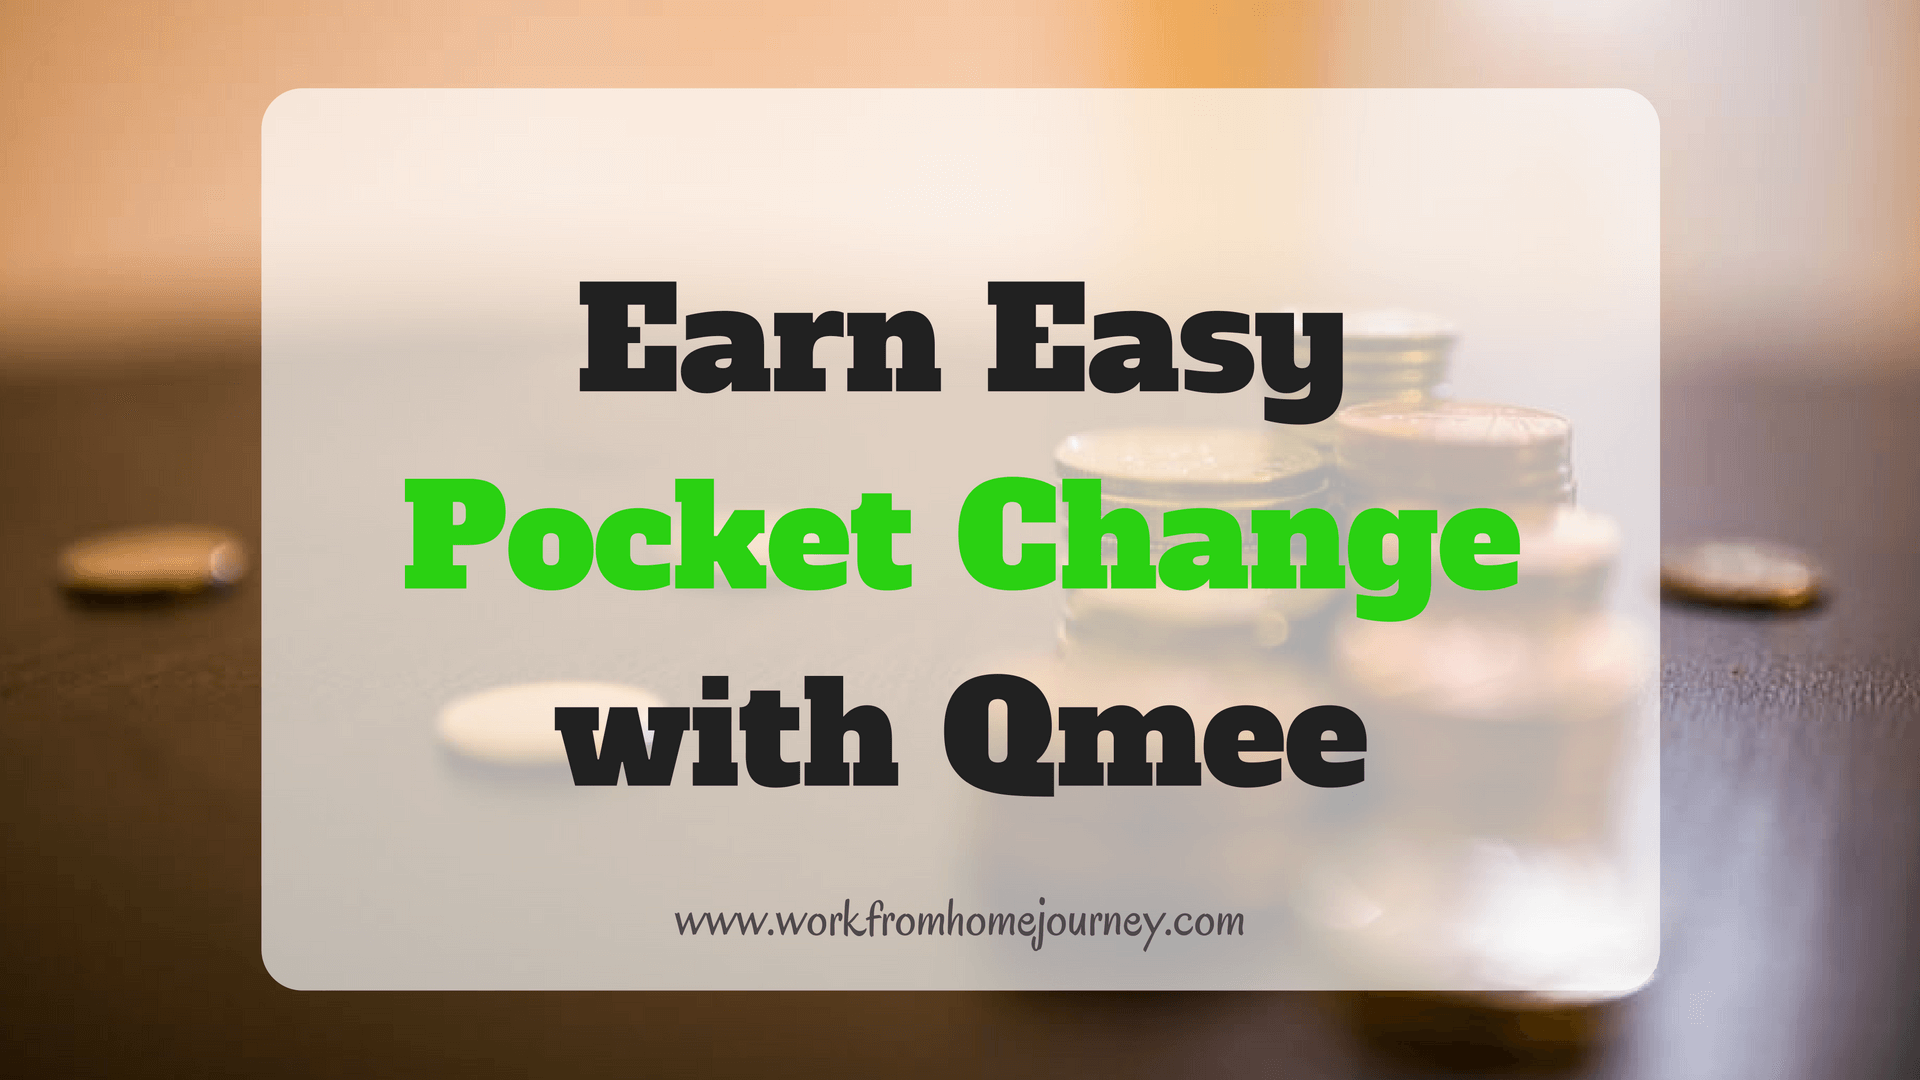 Qmee Review – Scam or Legit Opportunity? [Updated 2018]